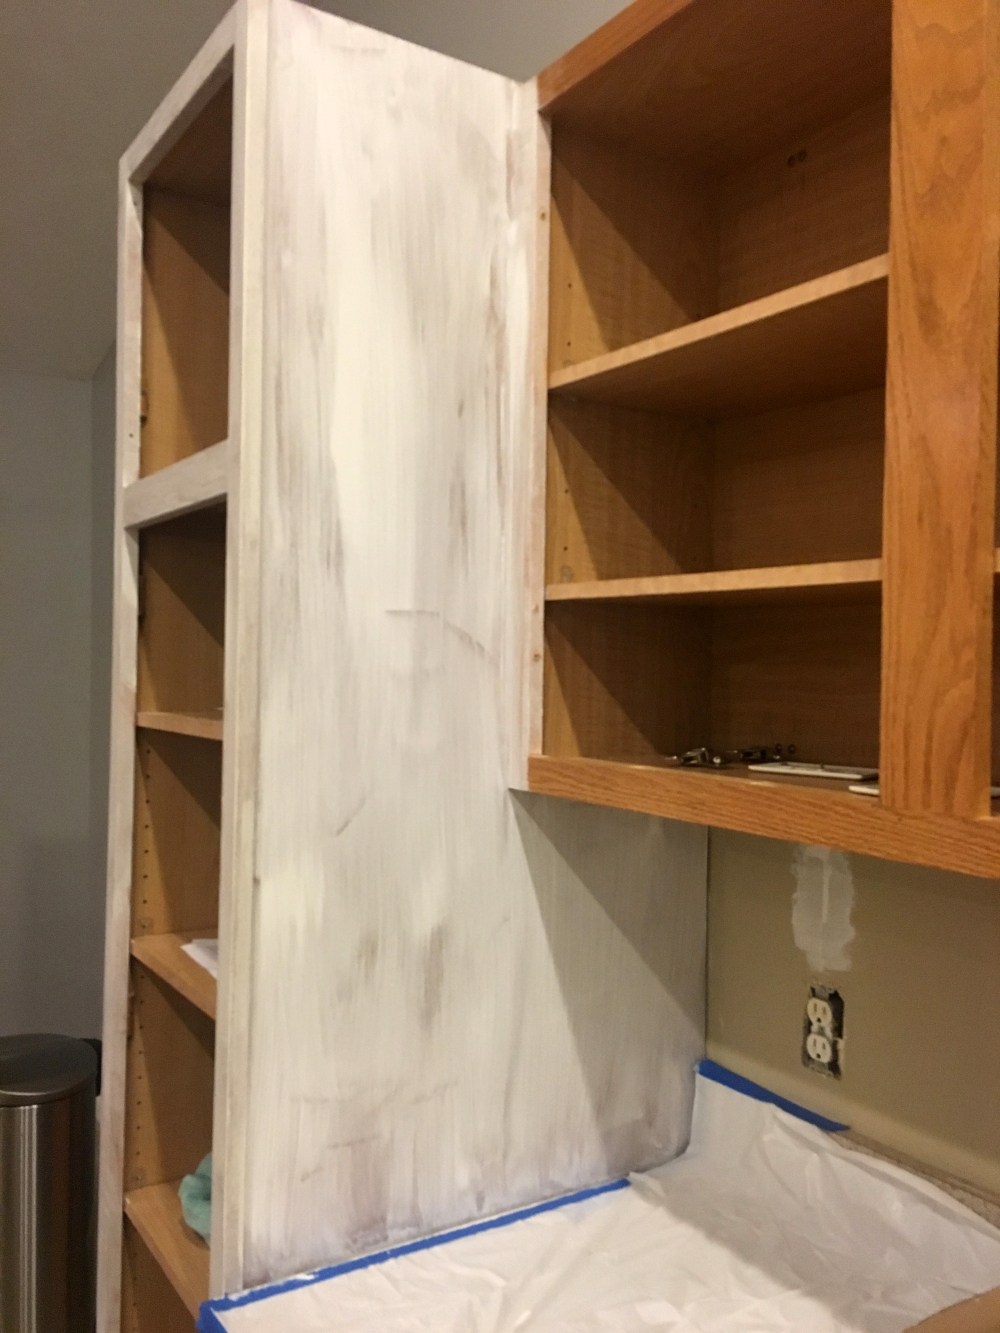 Cabinet with white primer, kitchen renovation, painters tape.